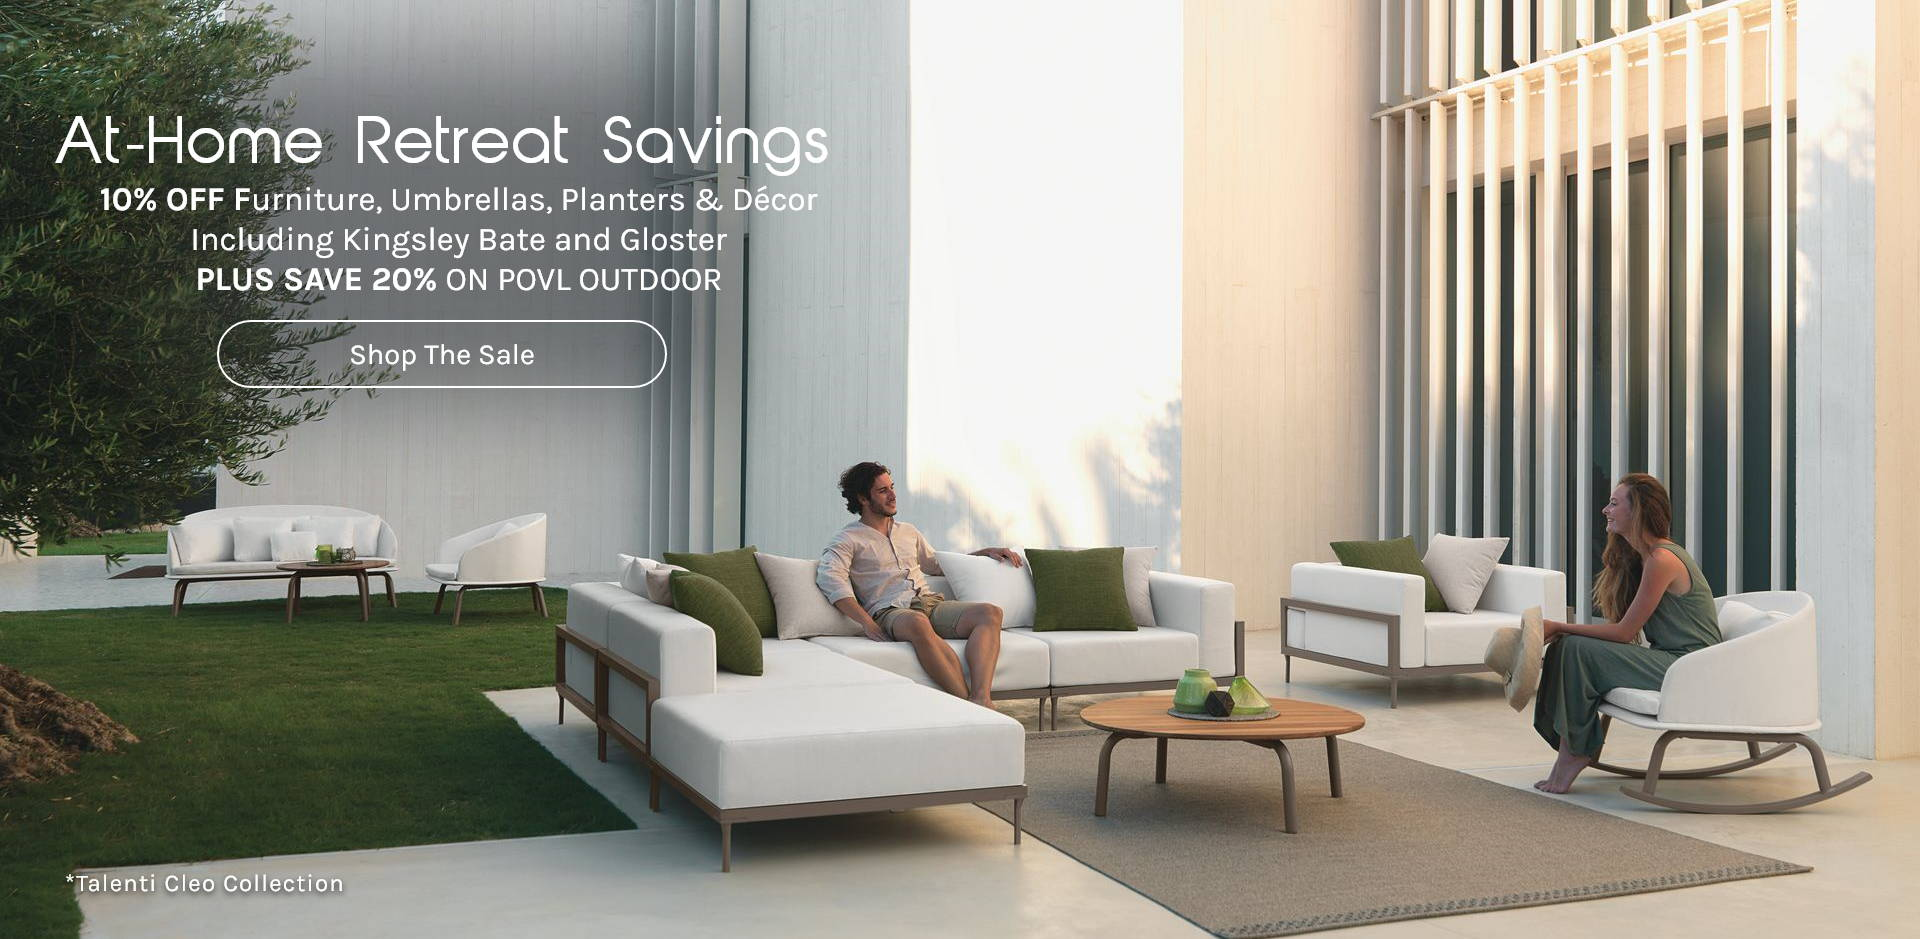 At-Home Retreat Savings 10% Off Furniture, Umbrellas, Planters & Decor. Including Kingsley Bate and Gloster Plus Save 20% on POVL Outdoor  The Sale